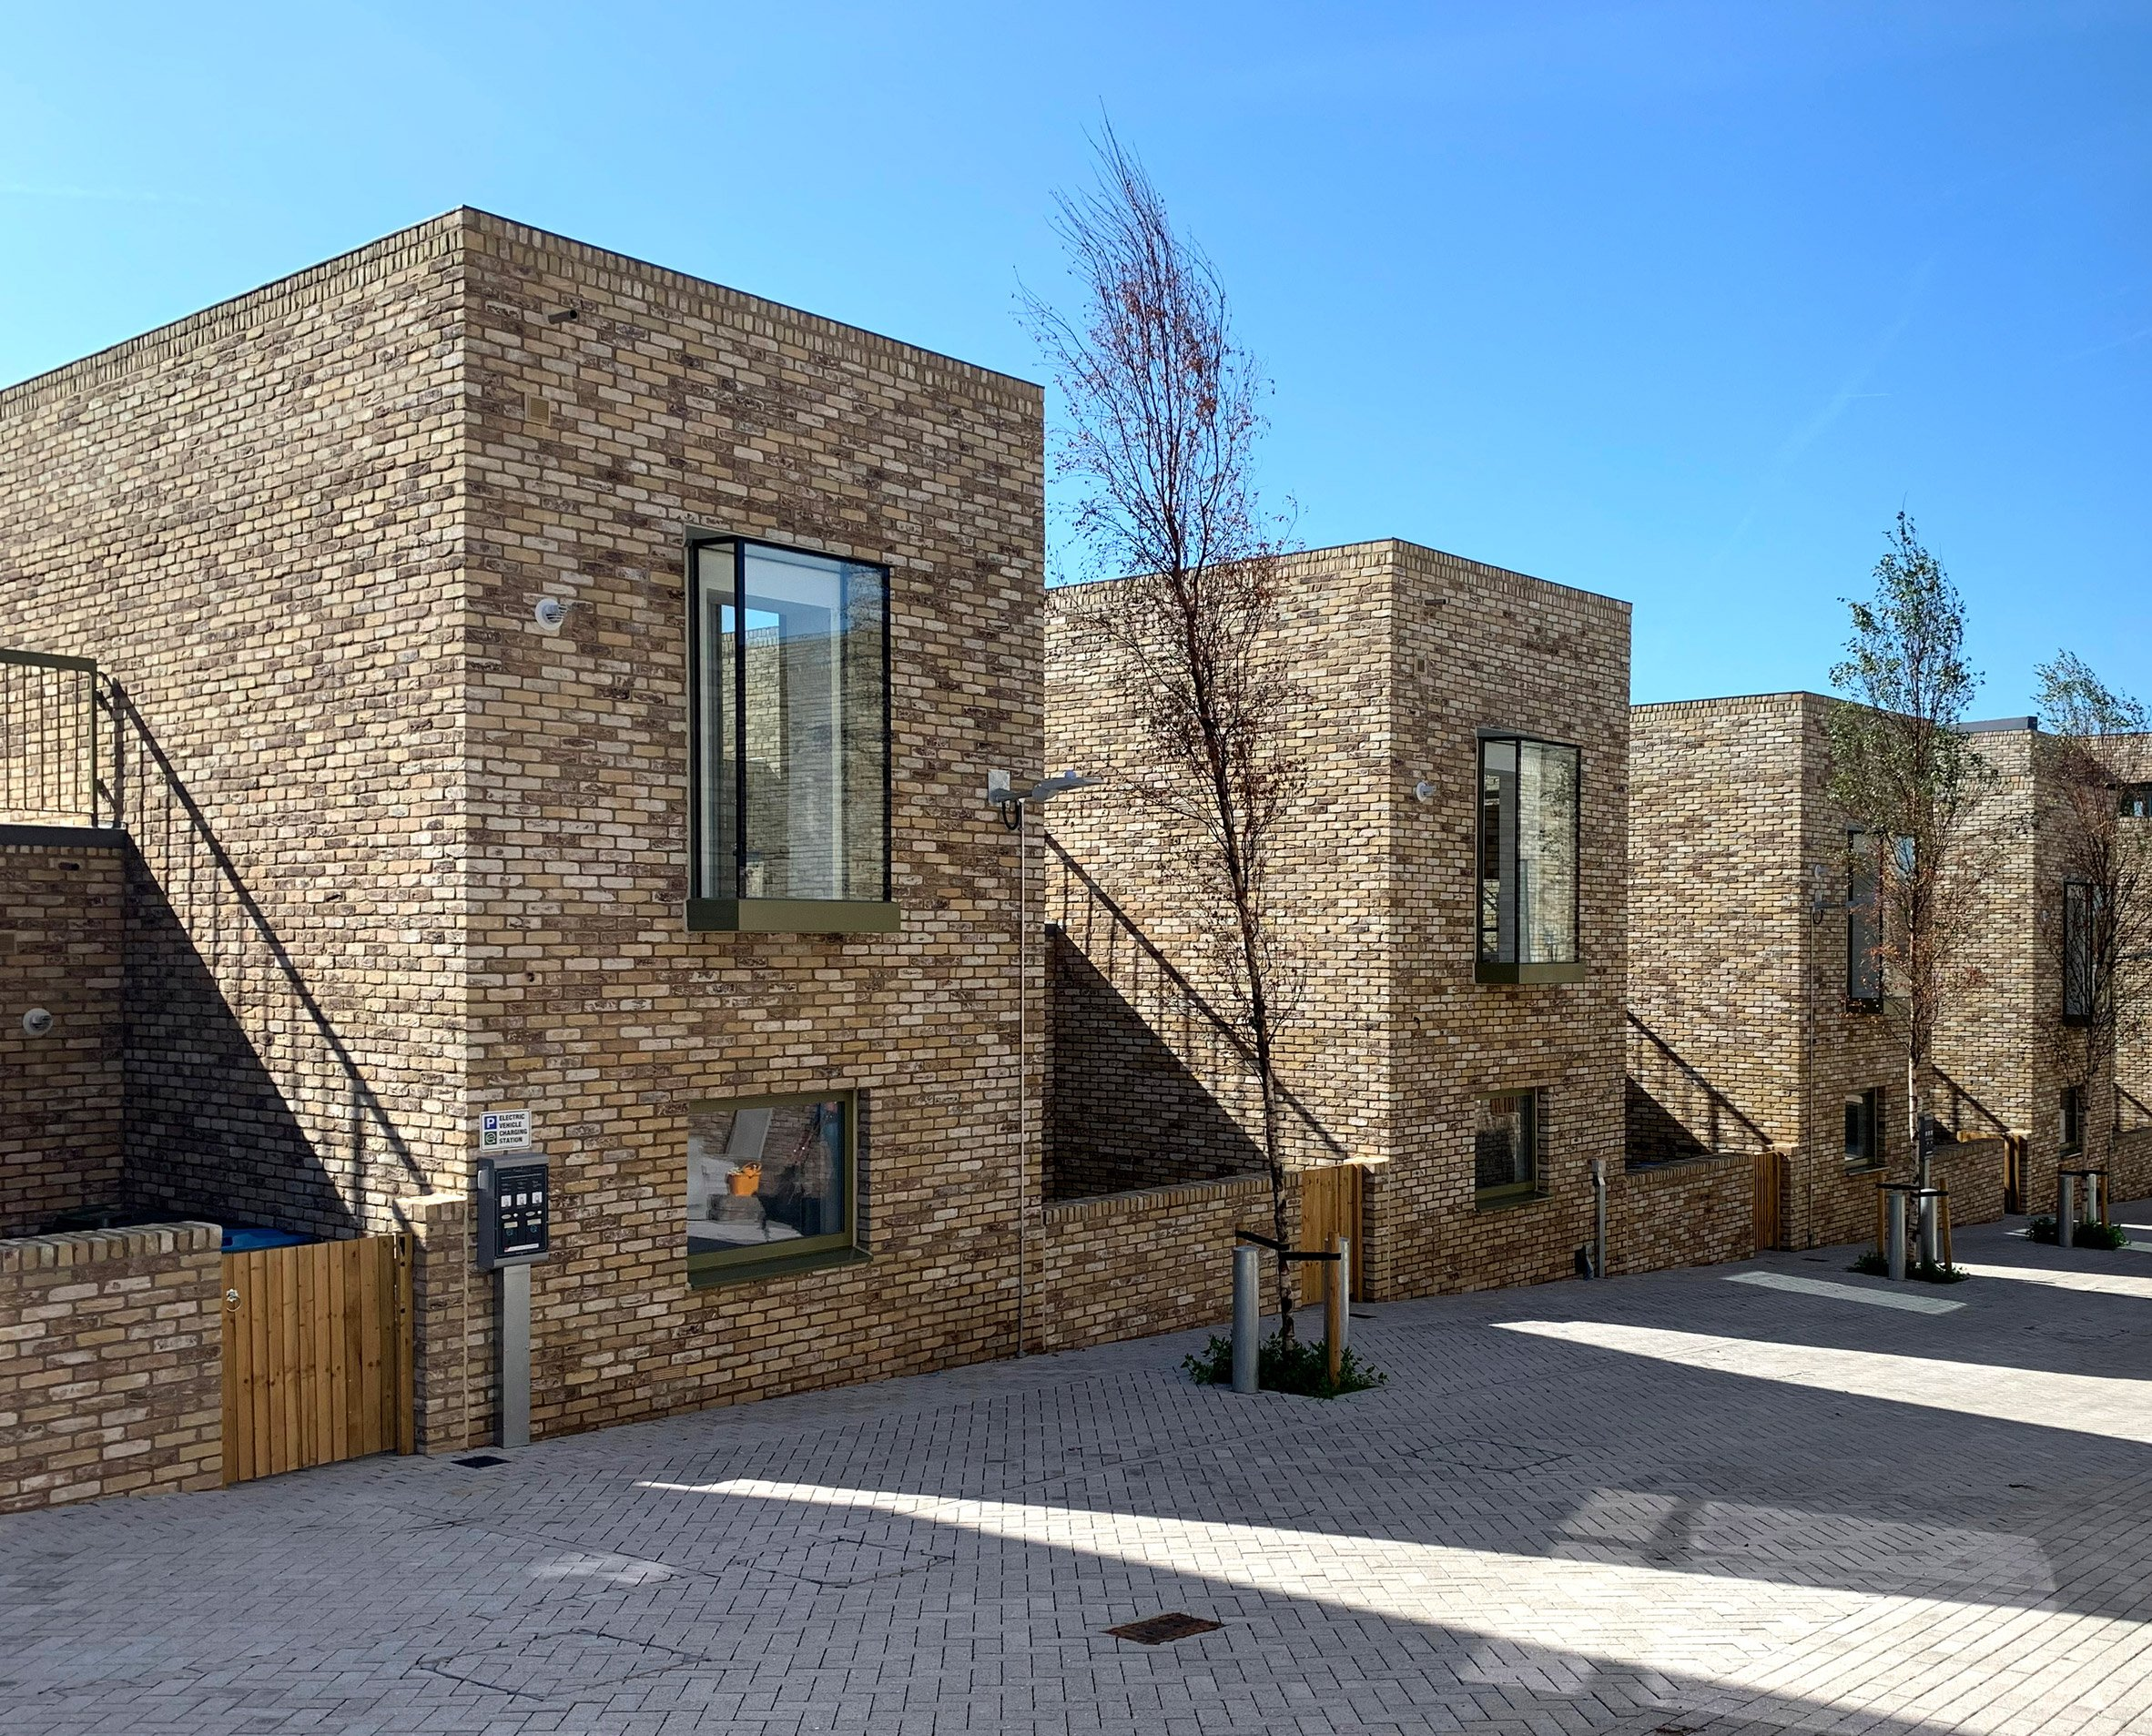 Terraced housing by Peter Barber Architects